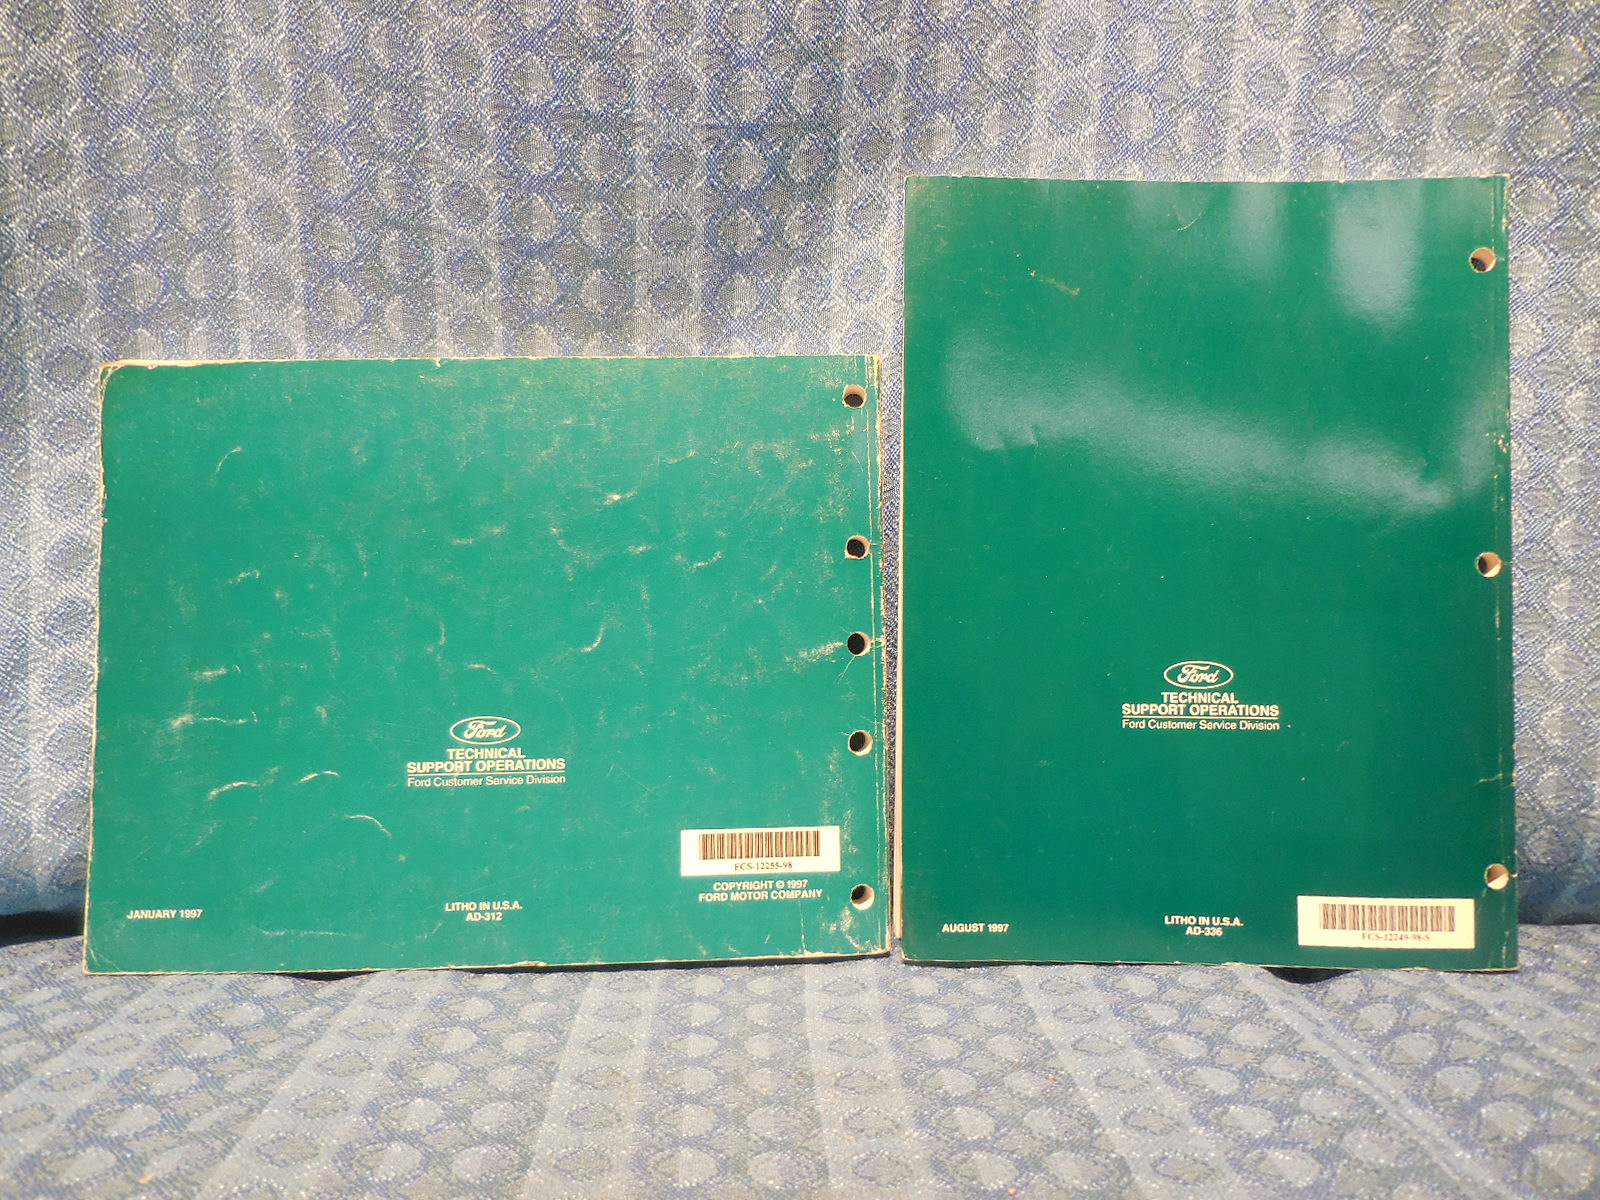 1998 Ford Windstar Original OEM Electrical Vacuum & Troubleshooting Manual  2 Vol